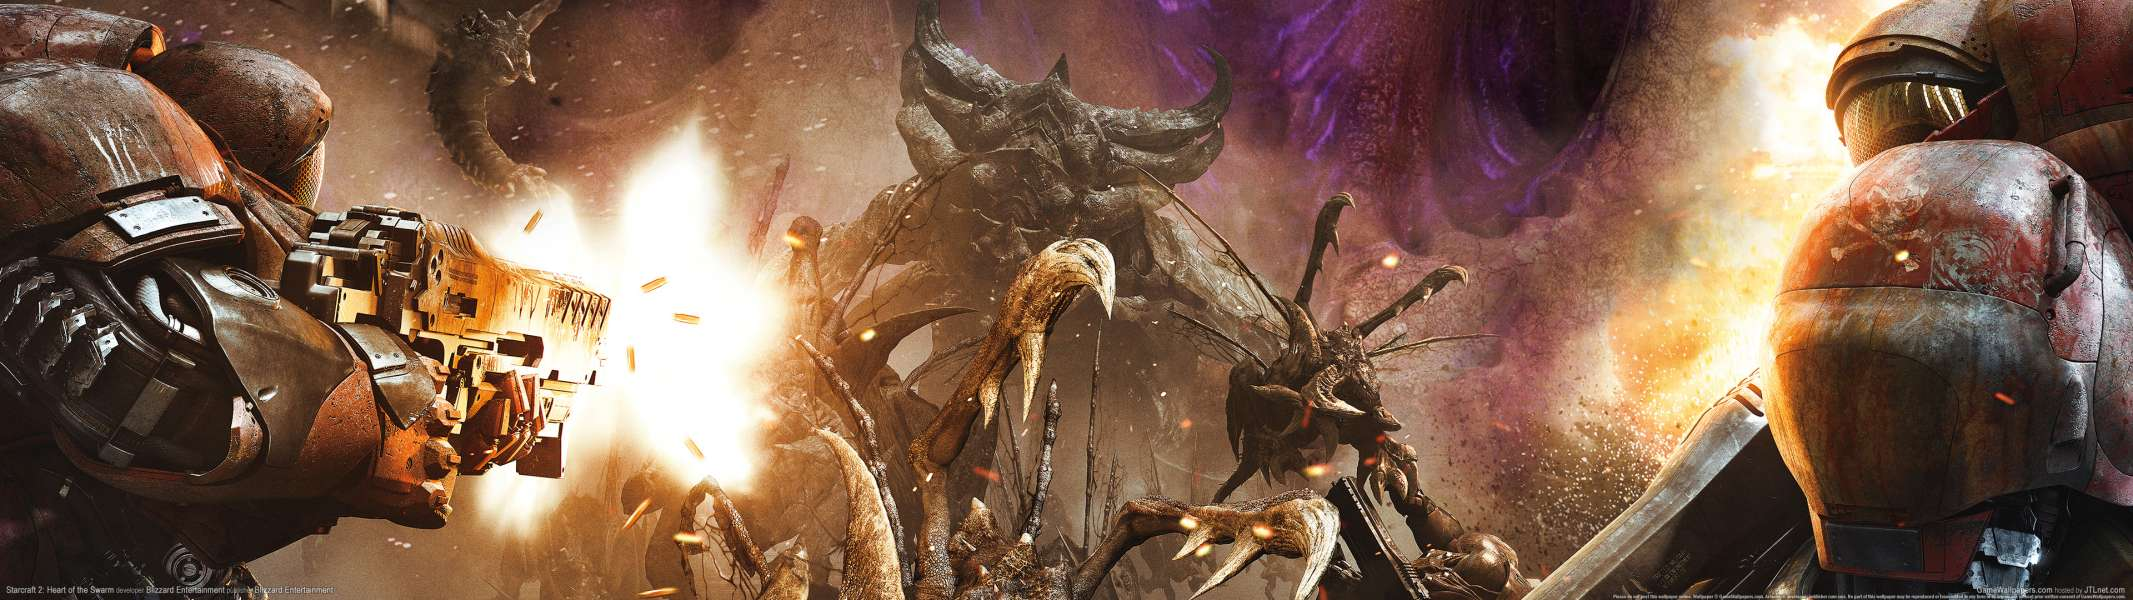 StarCraft 2: Heart of the Swarm dual screen fondo de escritorio